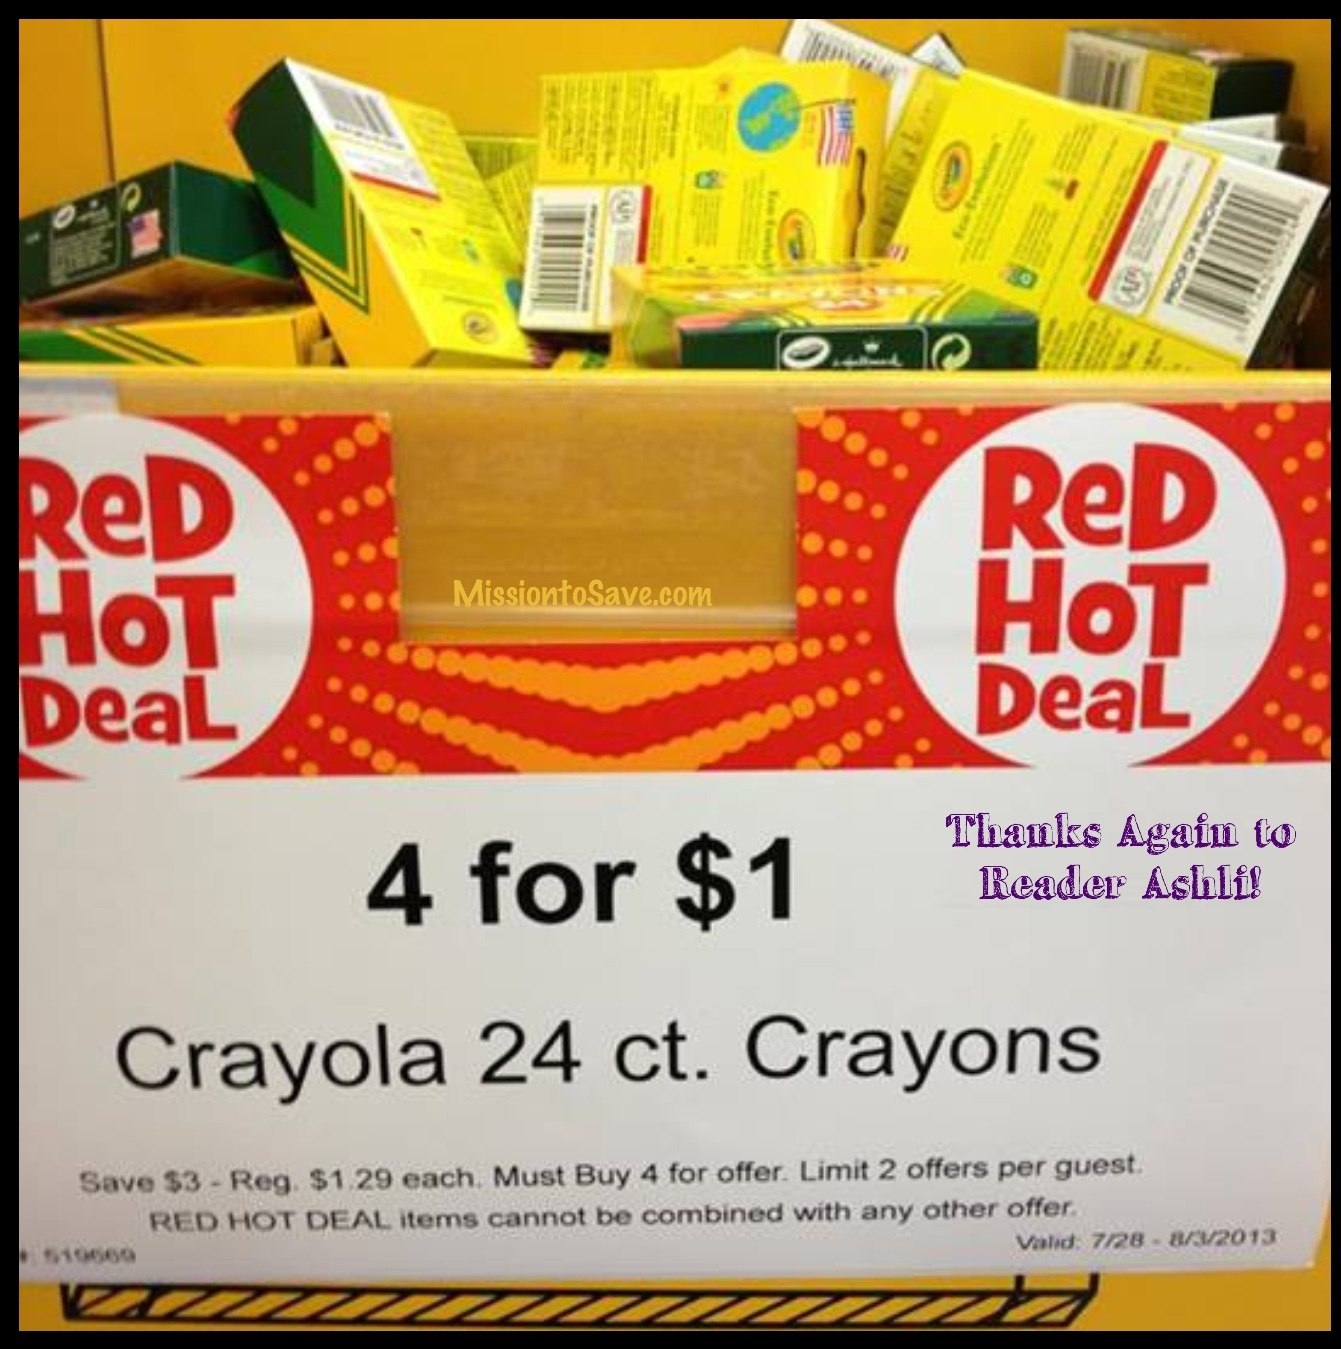 It's Back! Unadvertised ToysRUs Crayola Sale- 4 for $1!